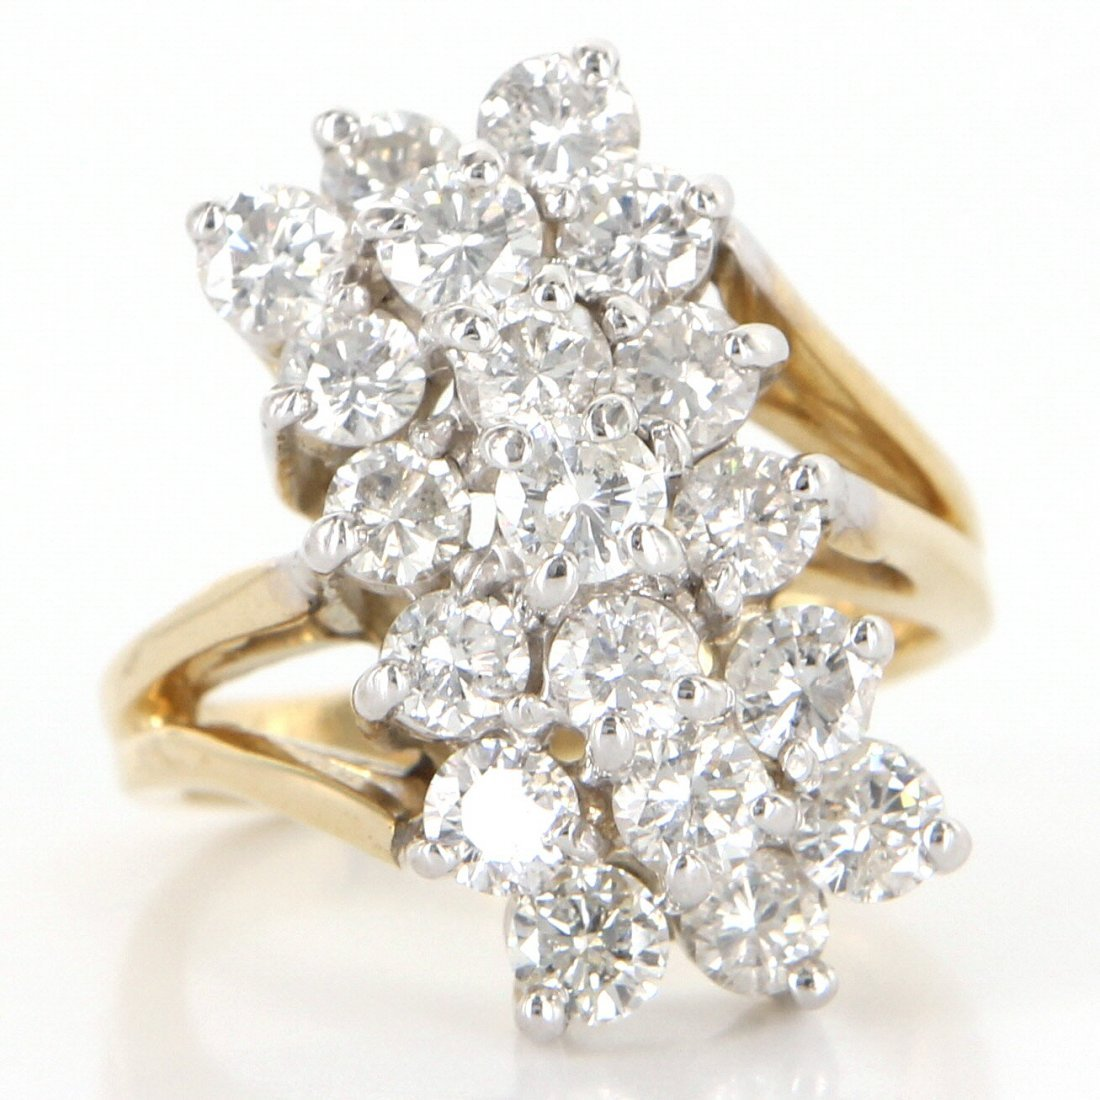 14 K Yellow Gold 2 Carat Diamond Cocktail Ring   Je